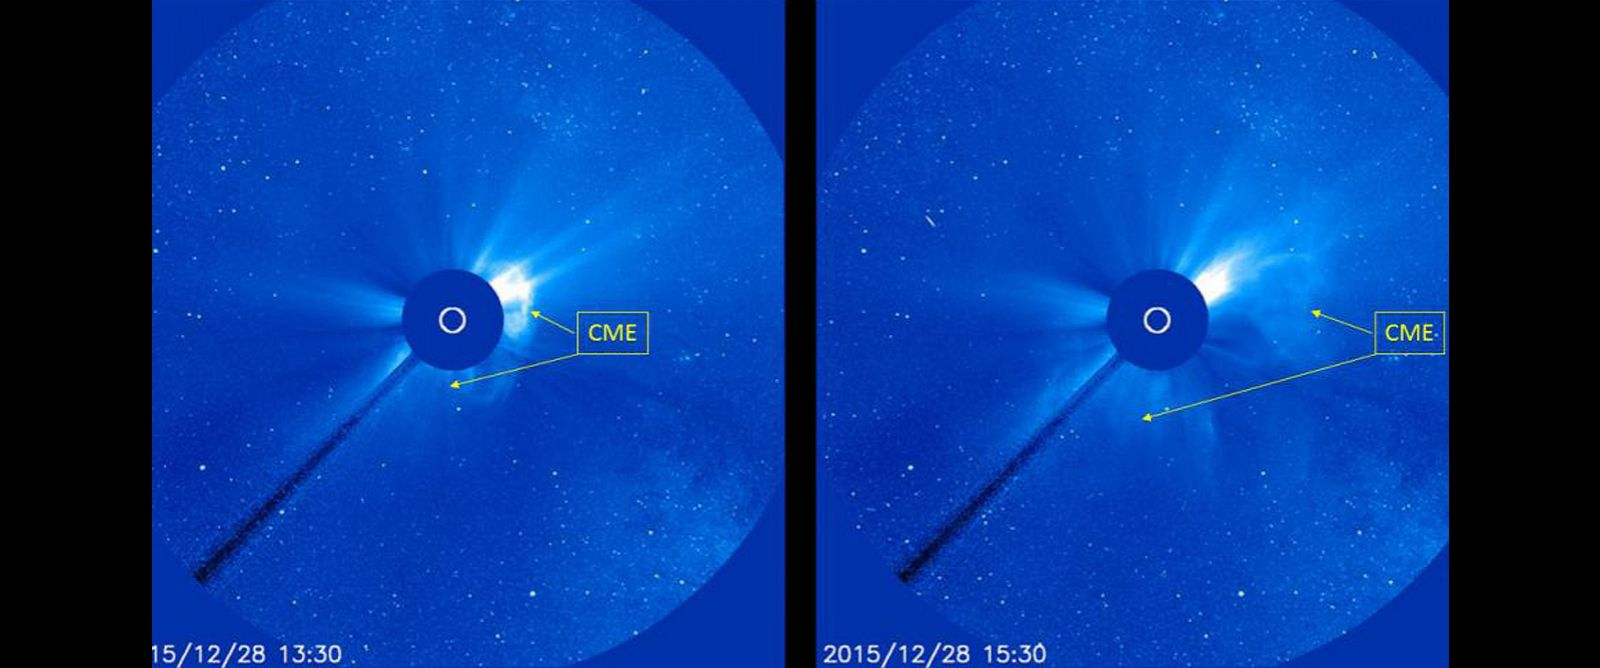 solar storm meaning - photo #27